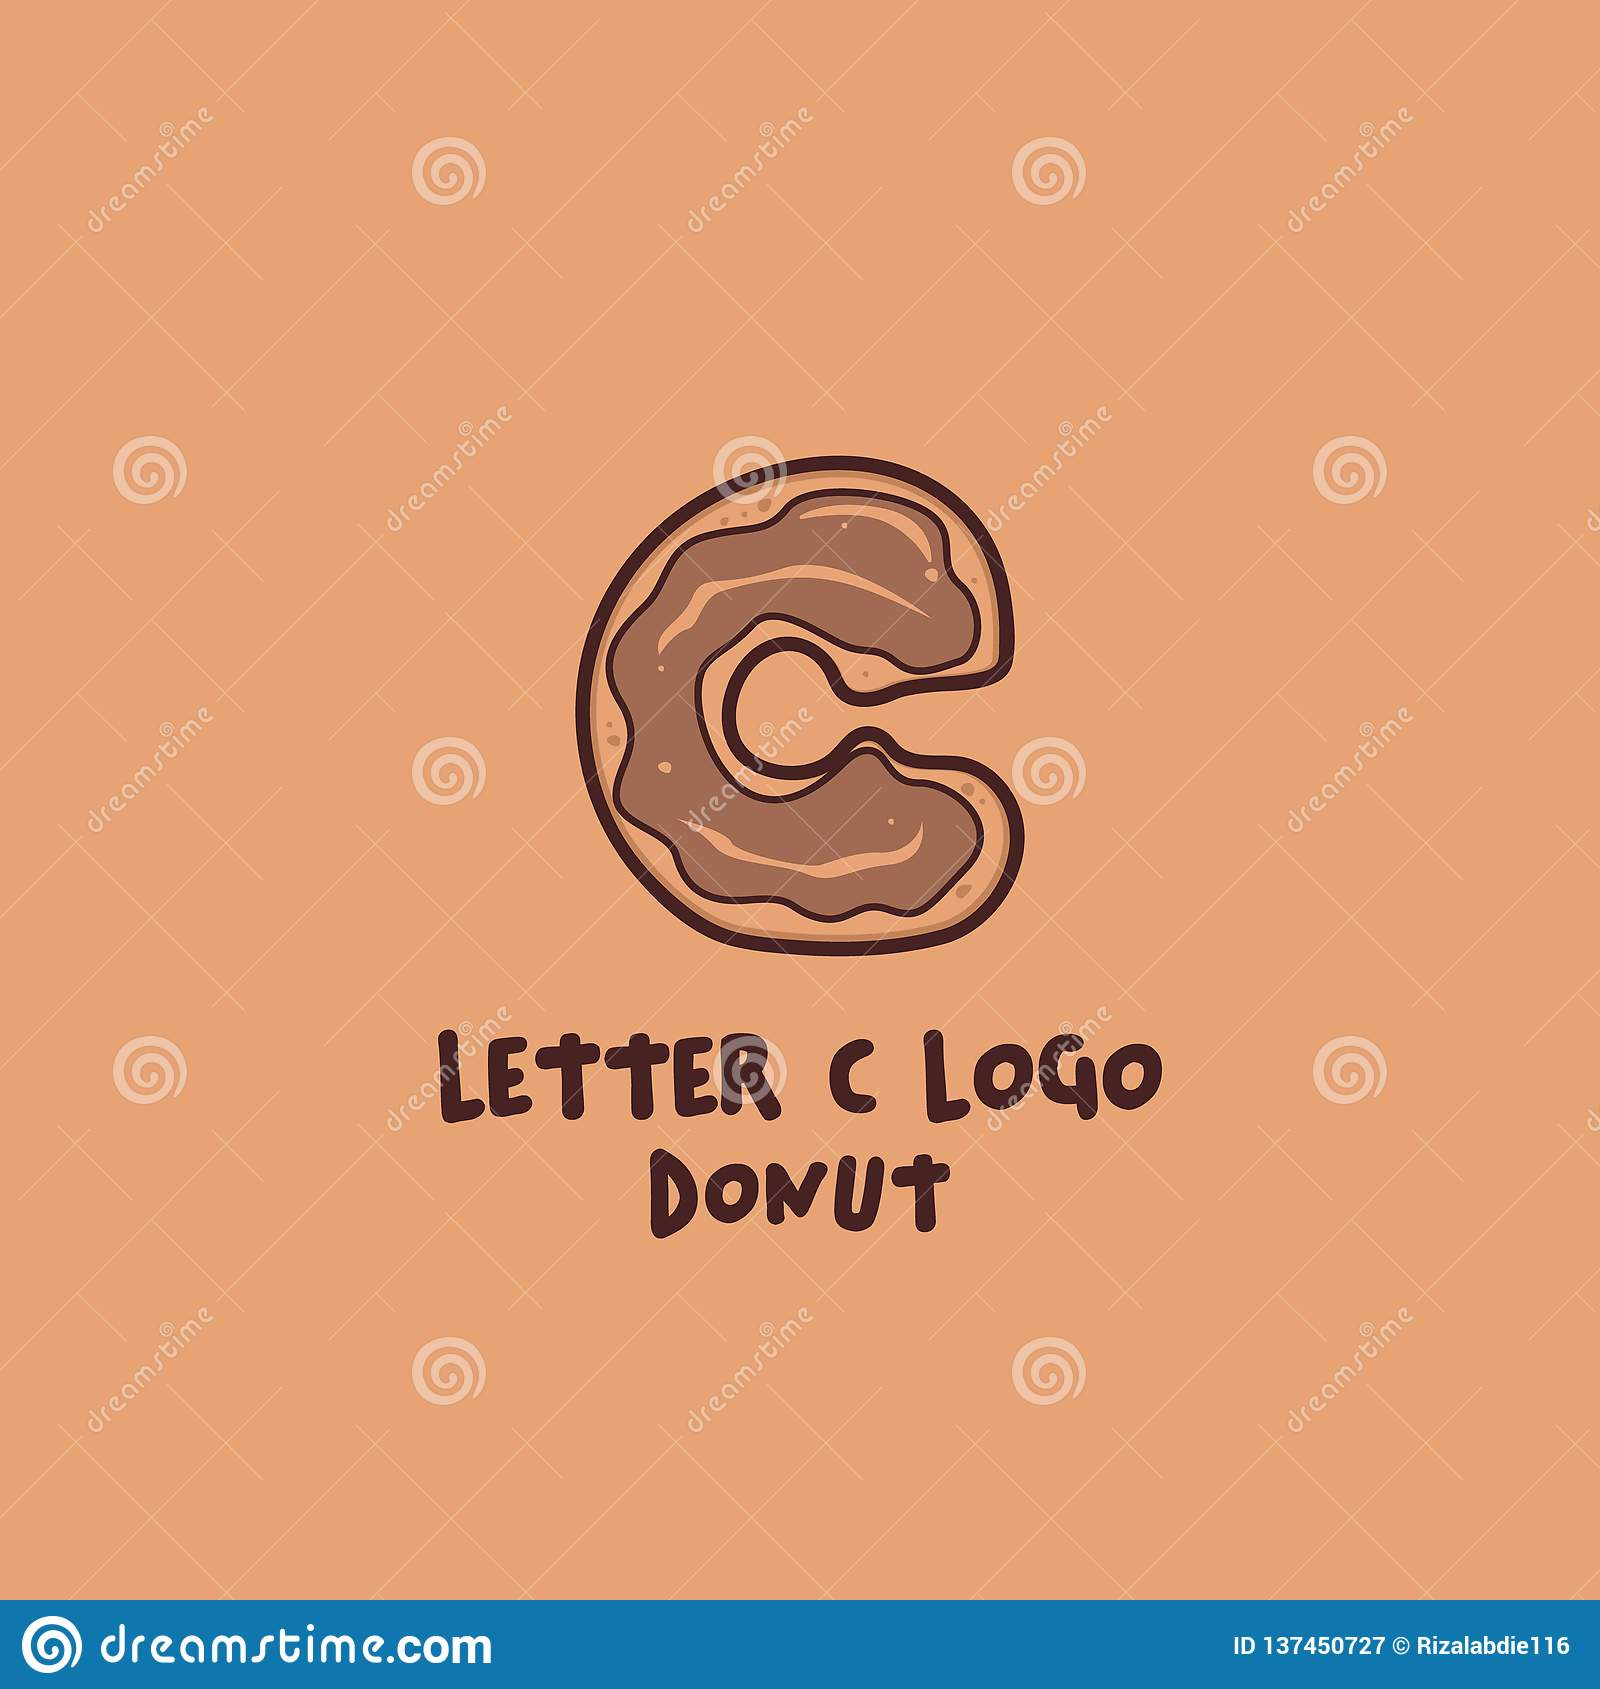 Letter C Donut Doughnut Logo, Food And Beverage Symbol Icon